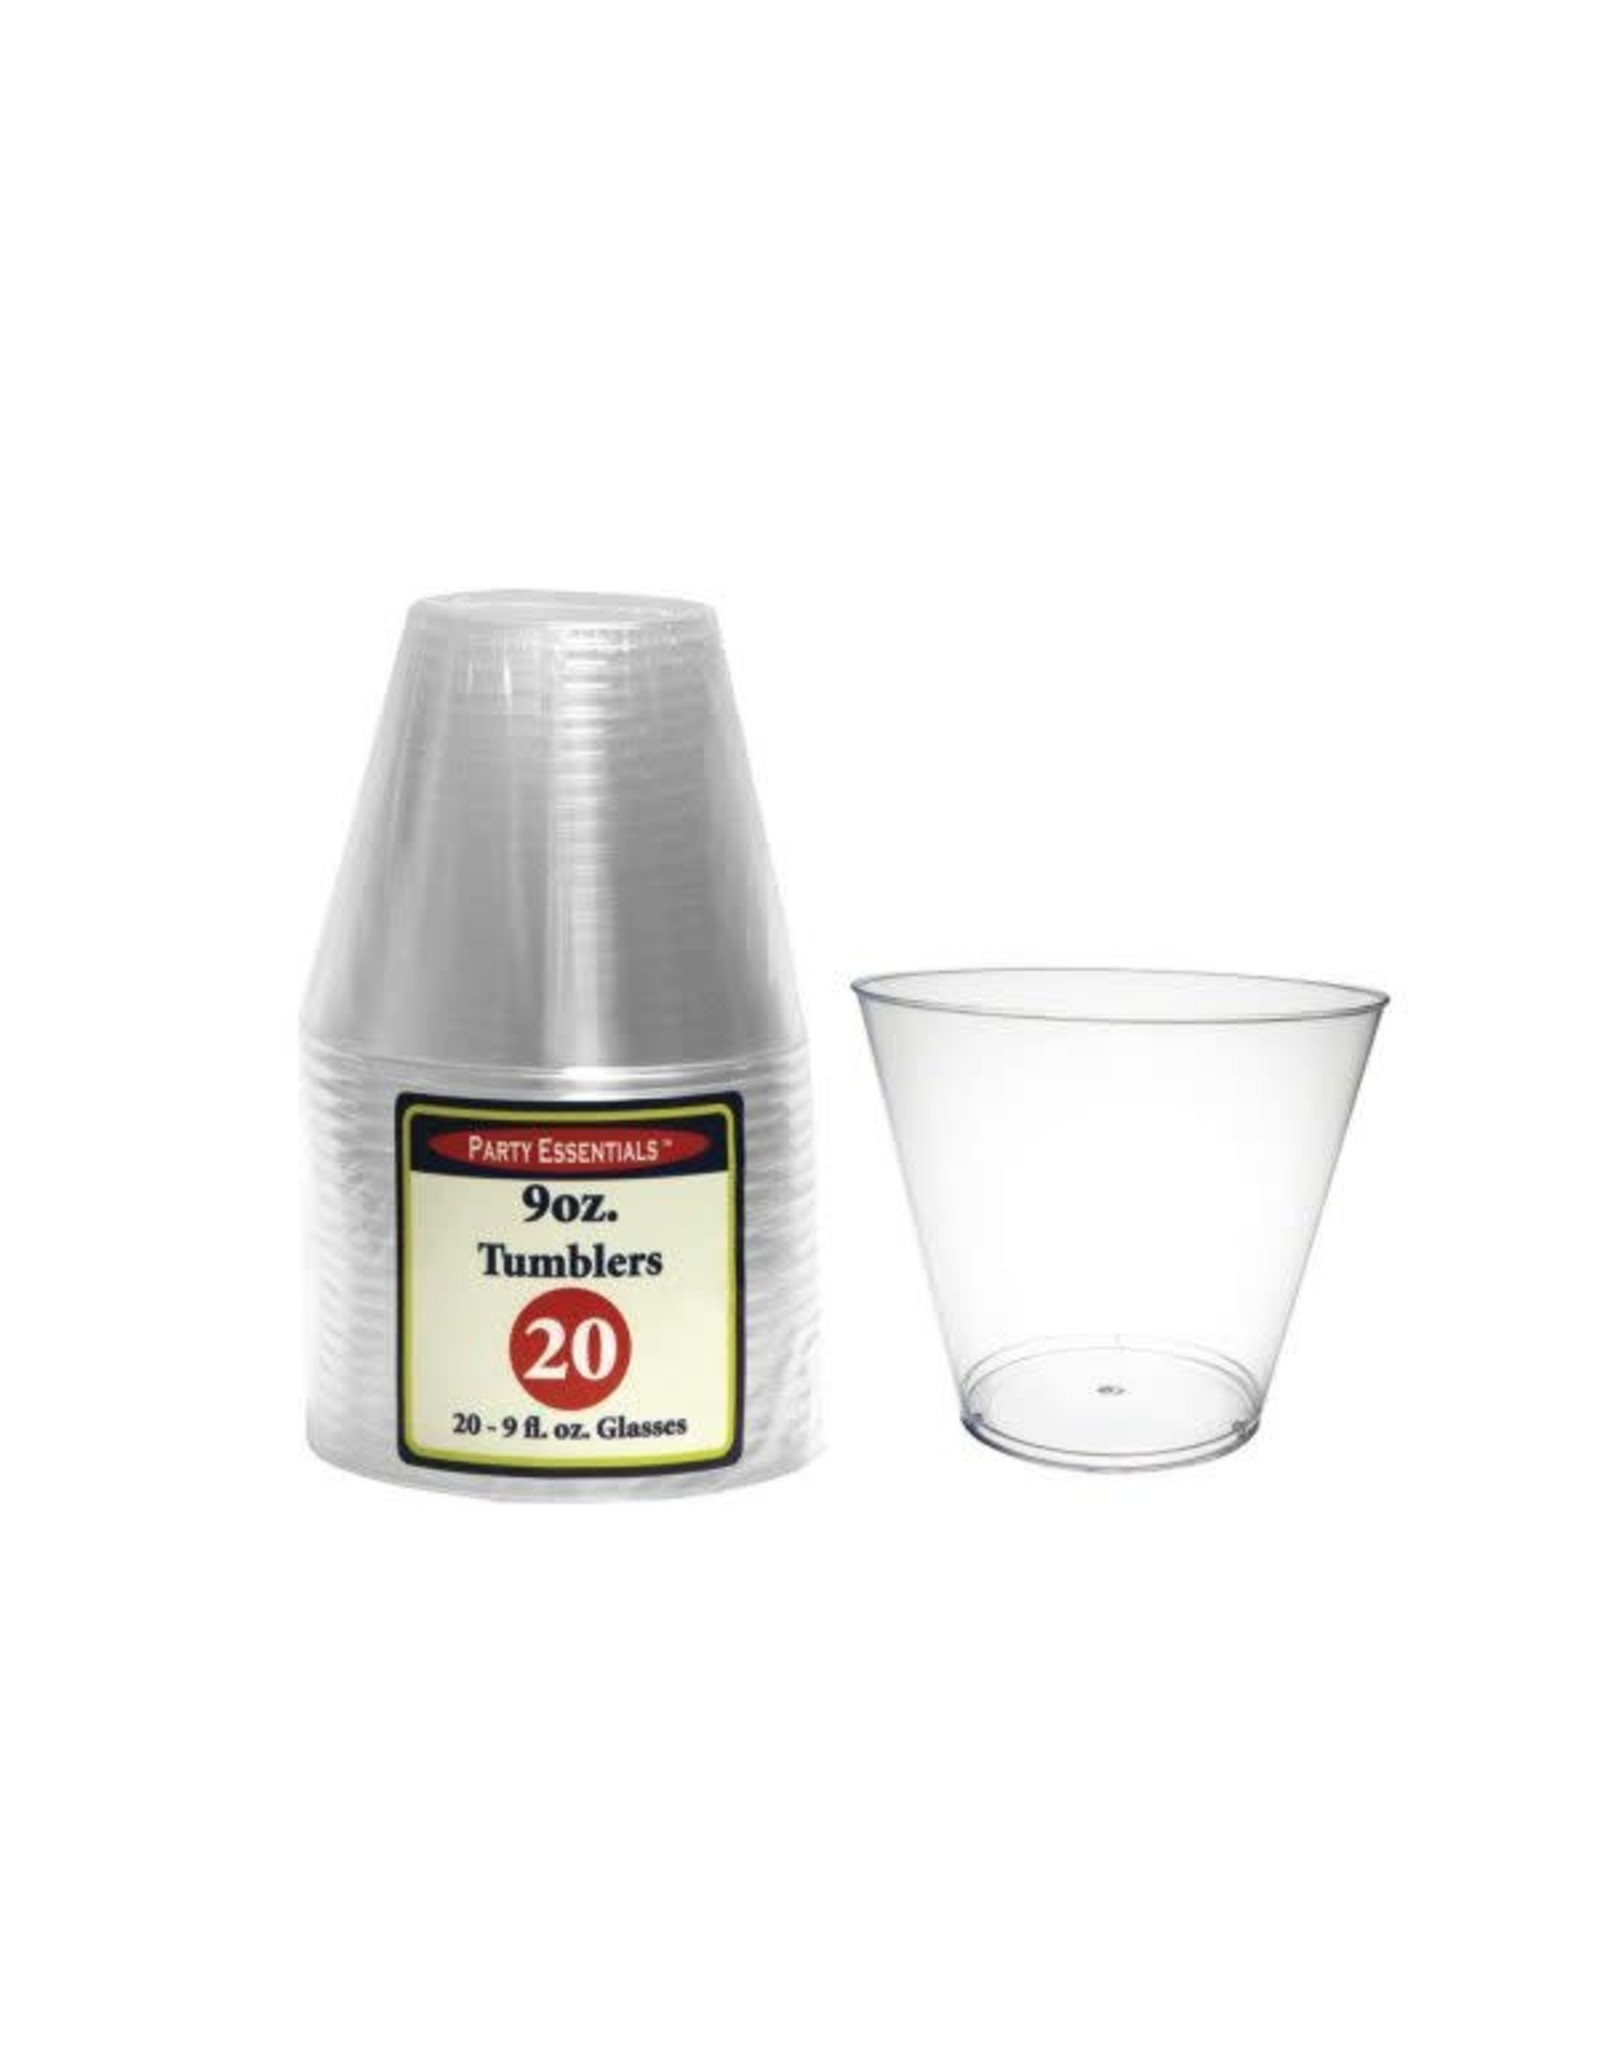 Party Essentials 9 oz. Tumblers - Clear 20 Ct.